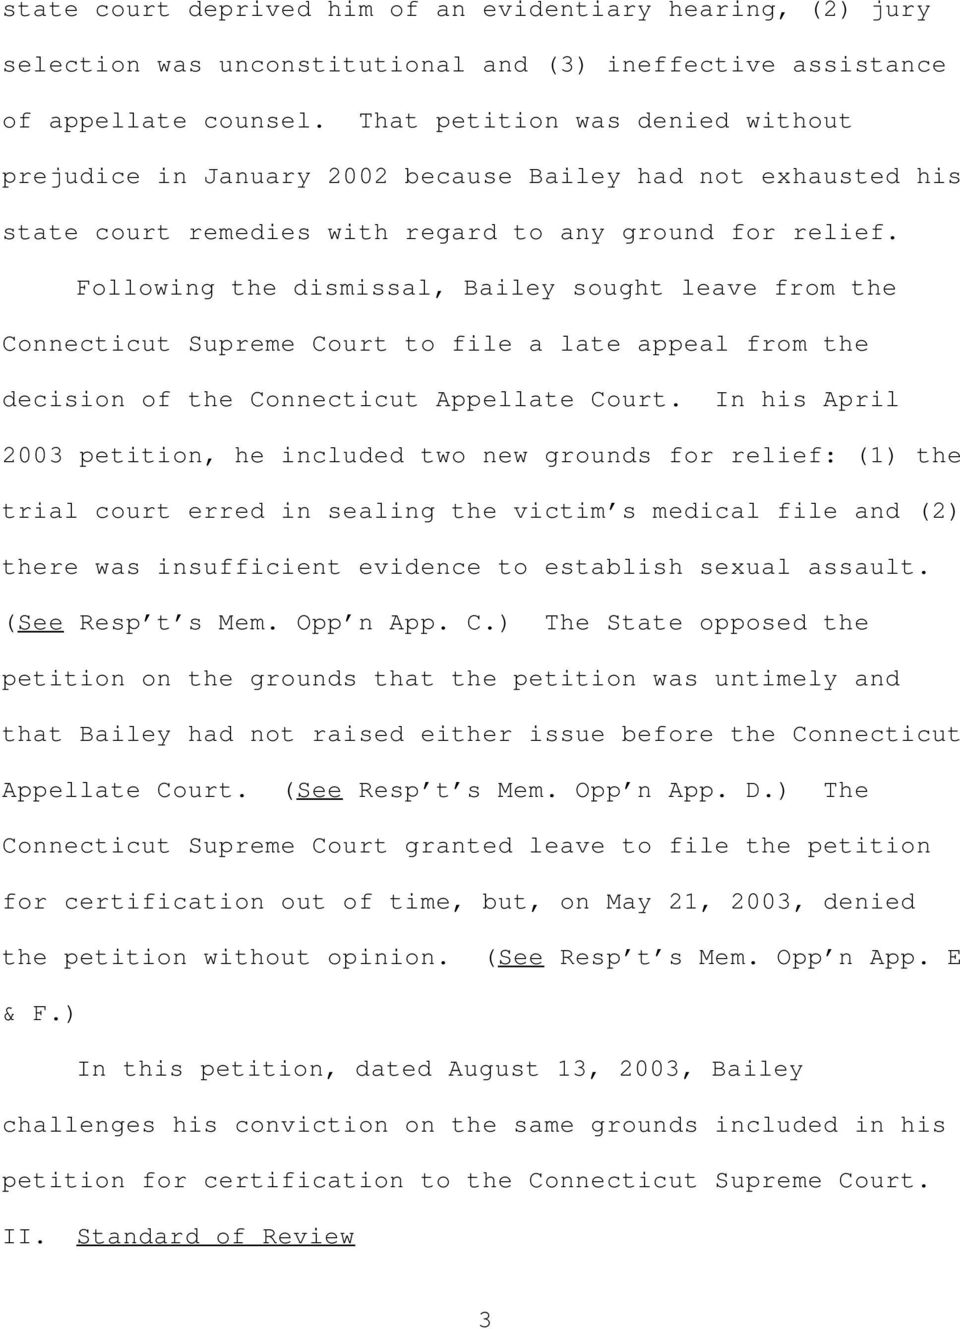 Following the dismissal, Bailey sought leave from the Connecticut Supreme Court to file a late appeal from the decision of the Connecticut Appellate Court.